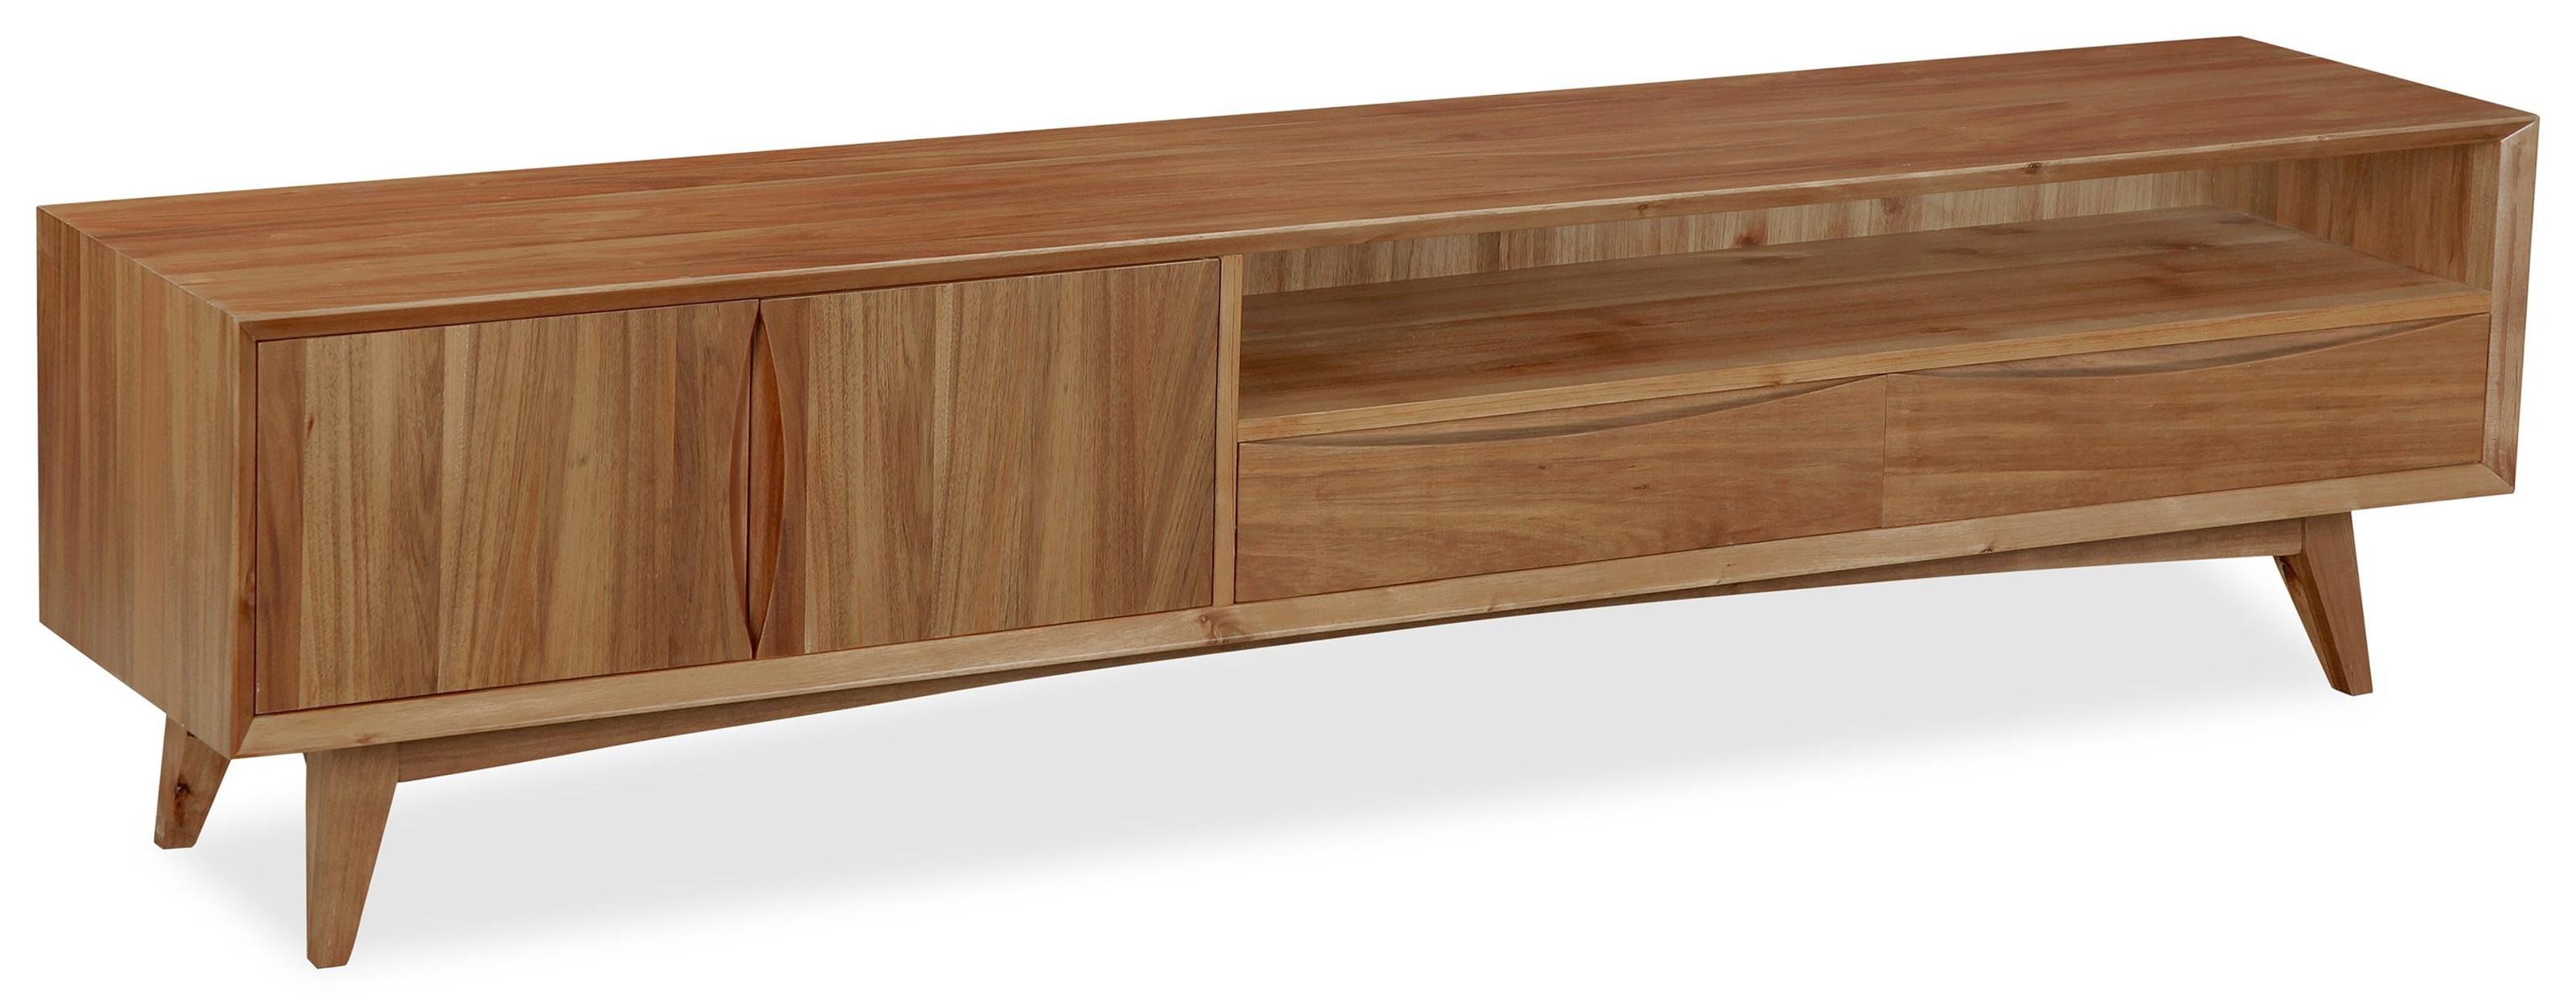 Berkeley Extra Large TV Unit by Global Home at Red Knot